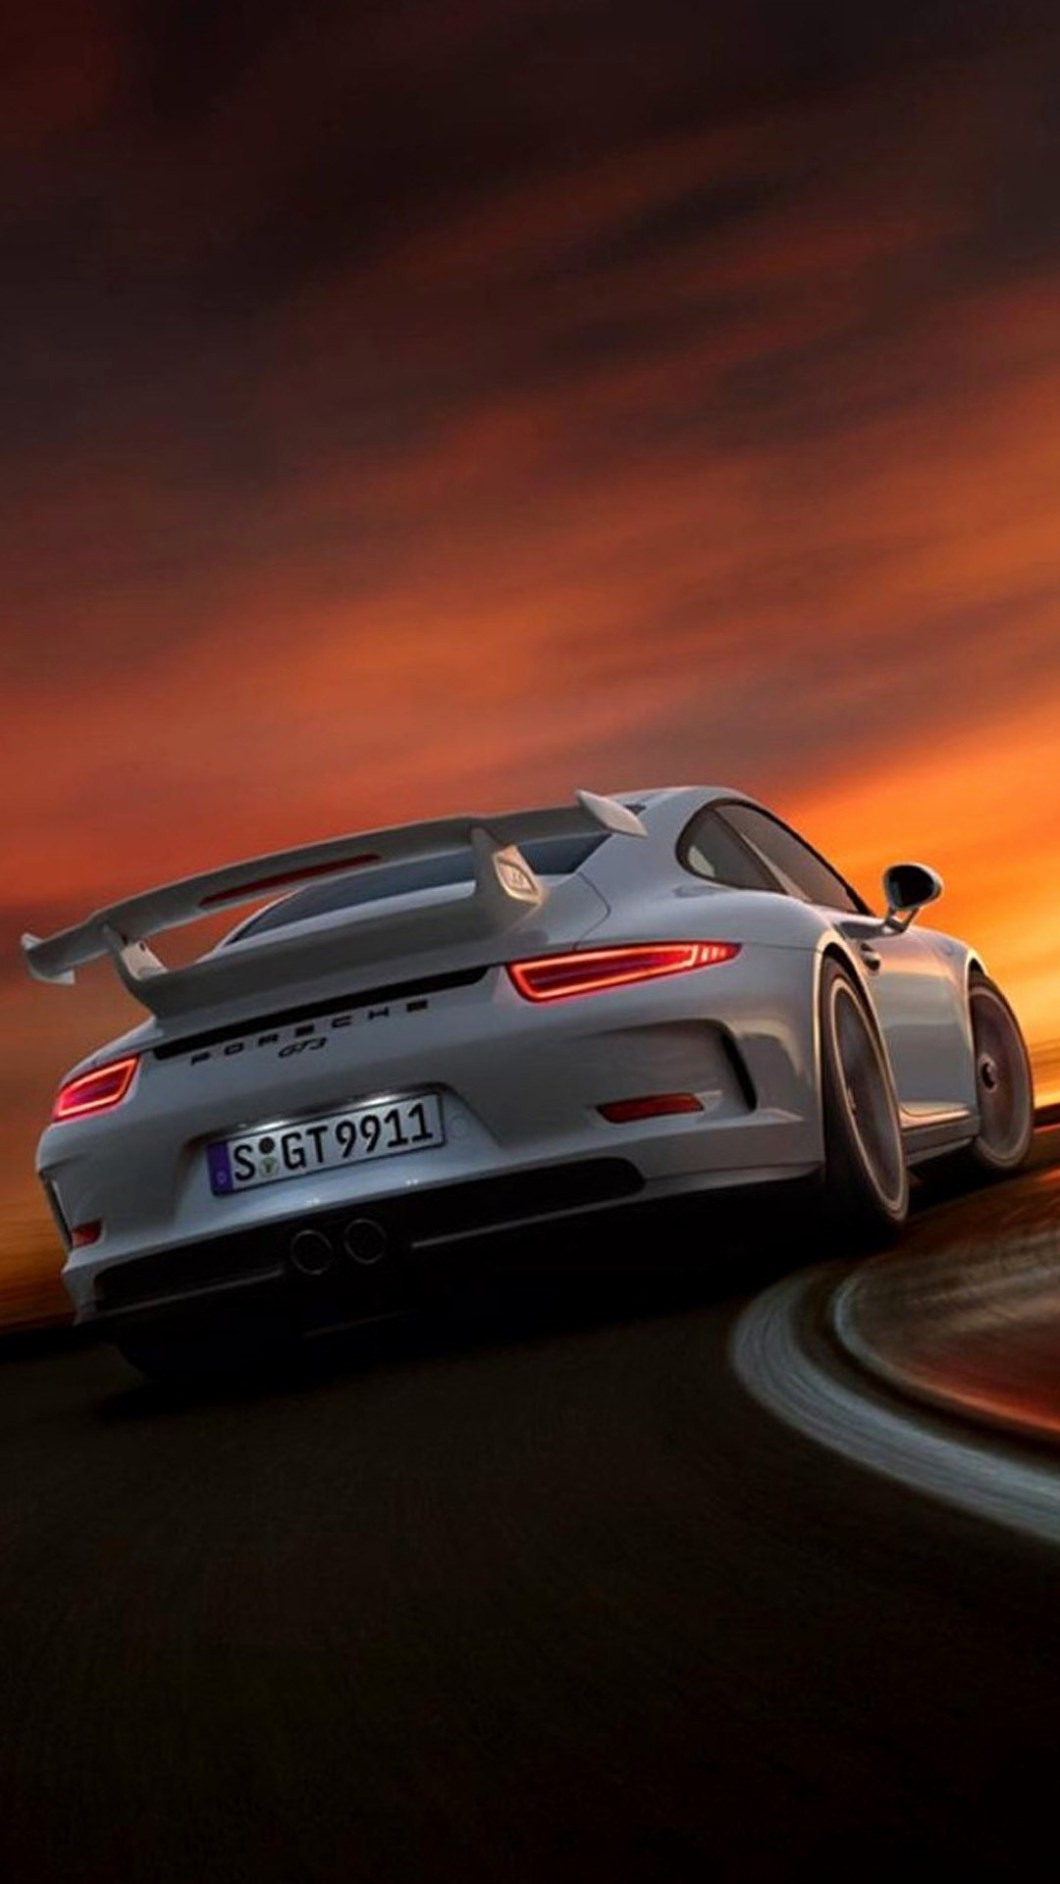 Iphone Car Wallpapers Hd Posted By John Sellers